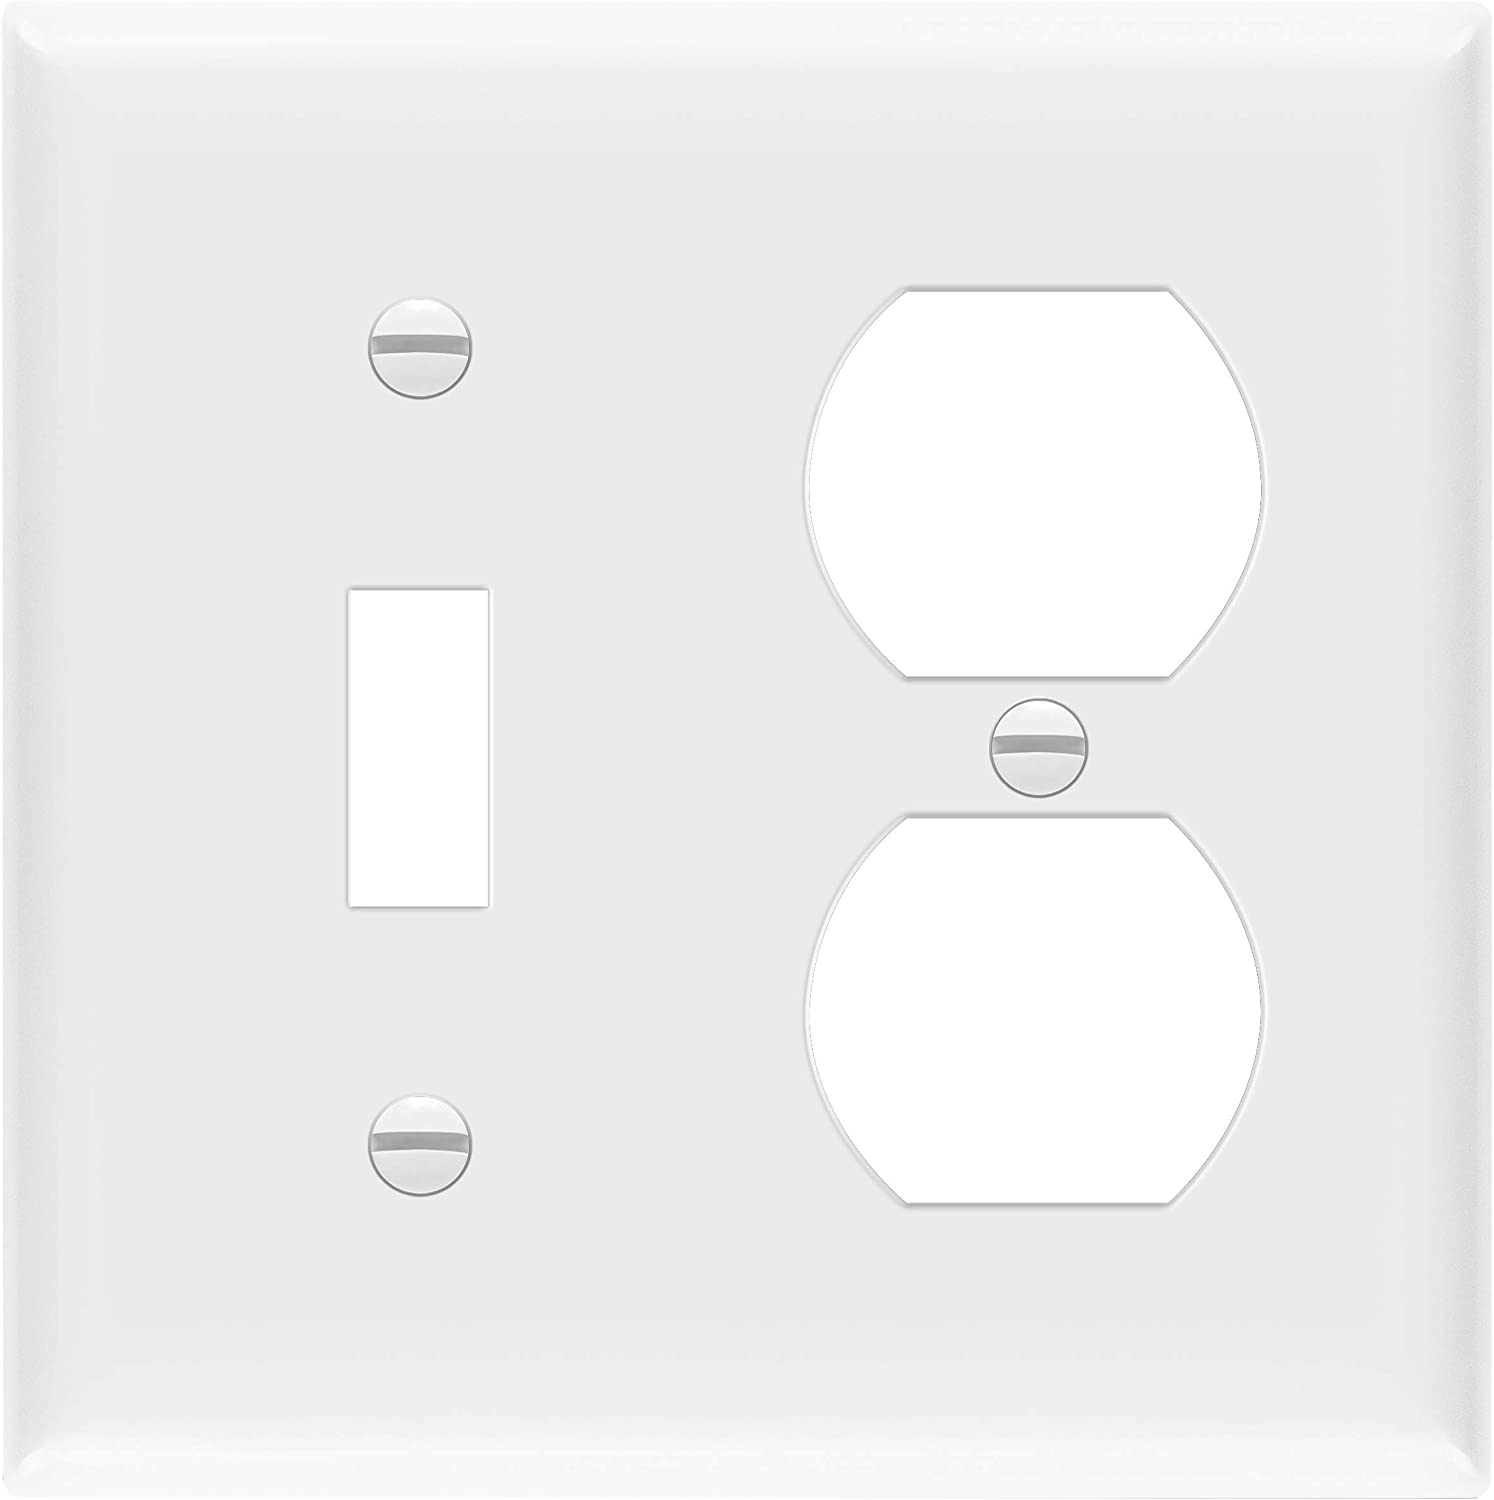 """ENERLITES Combination Toggle Light Switch/Duplex Receptacle Outlet Wall Plate, Size 2-Gang 4.50"""" x 4.57"""",Polycarbonate Thermoplastic, 881121-W, White, Standard"""